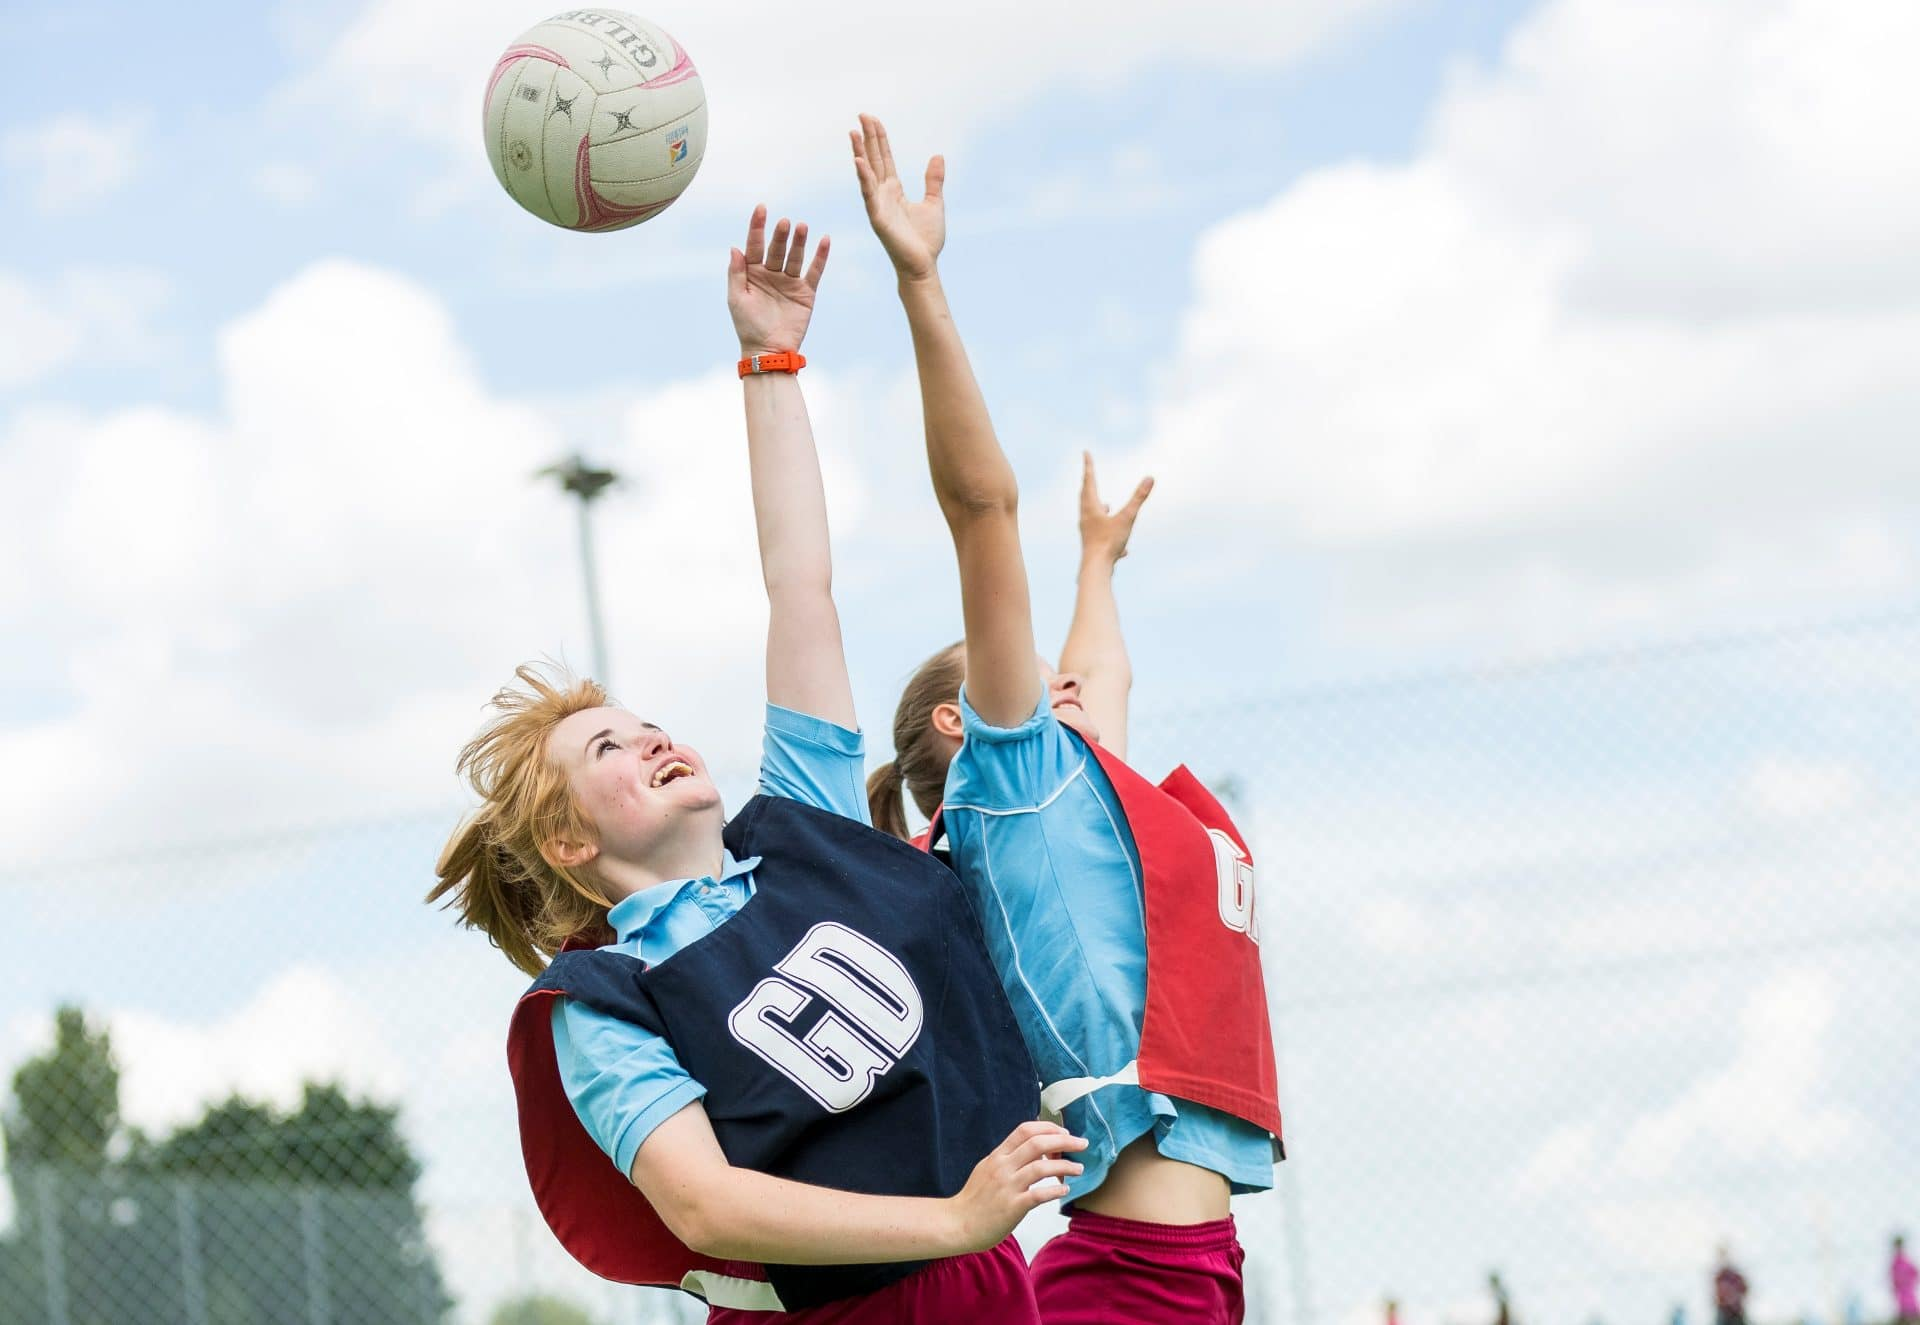 netball-featured-image